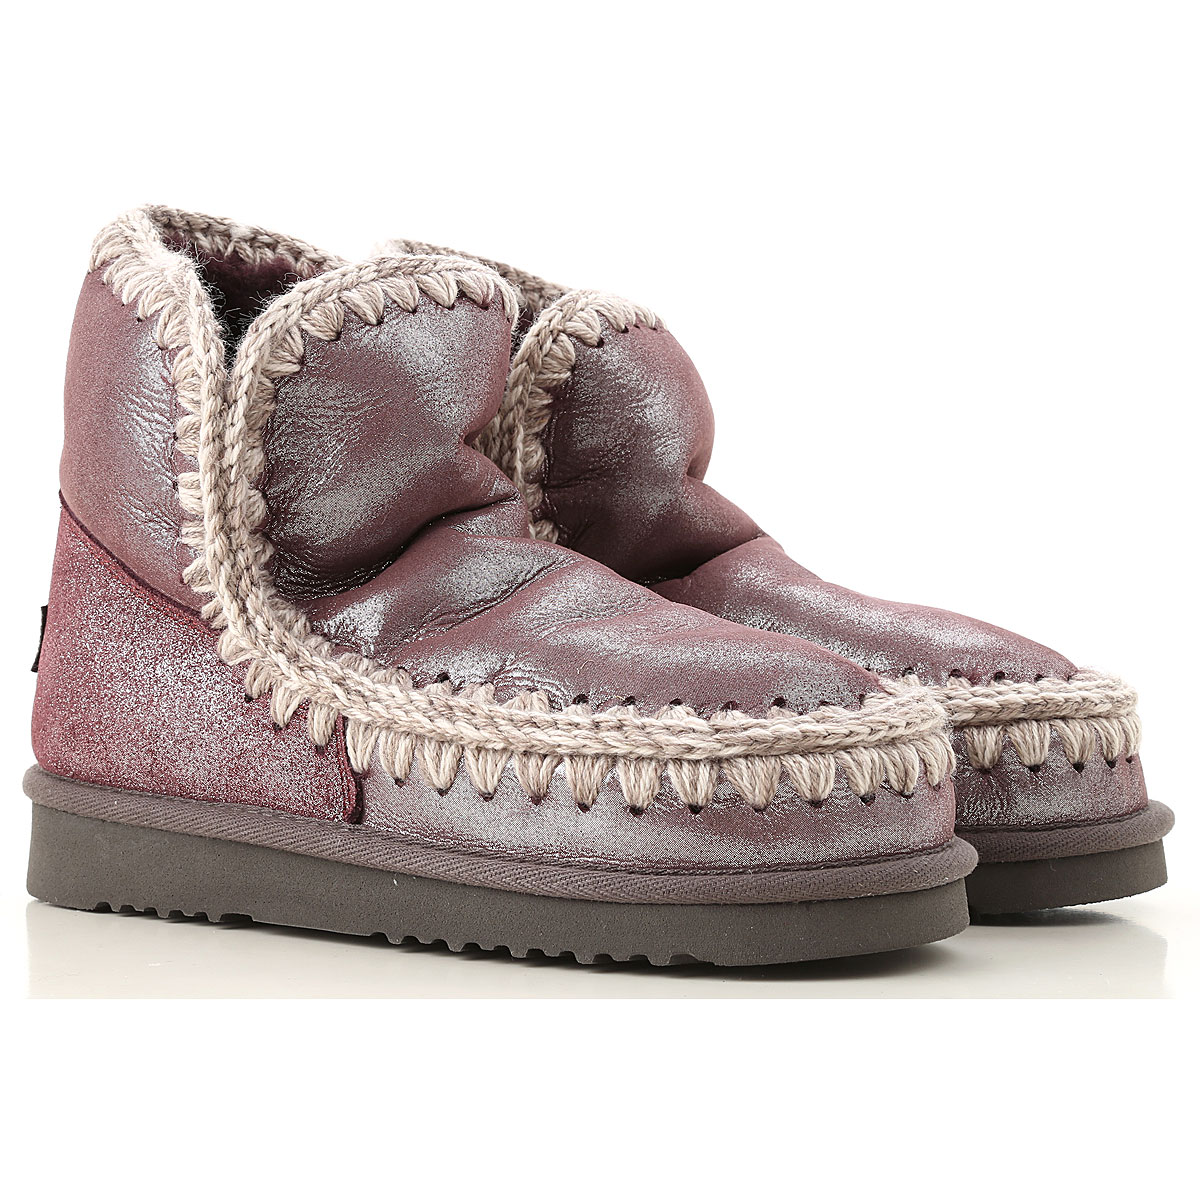 Image of Mou Boots for Women, Booties, Wine, suede, 2017, EUR 36 - UK 3 - USA 5.5 EUR 37 - UK 4 - USA 6.5 EUR 38 - UK 5 - USA 7.5 EUR 39 - UK 6 - USA 8.5